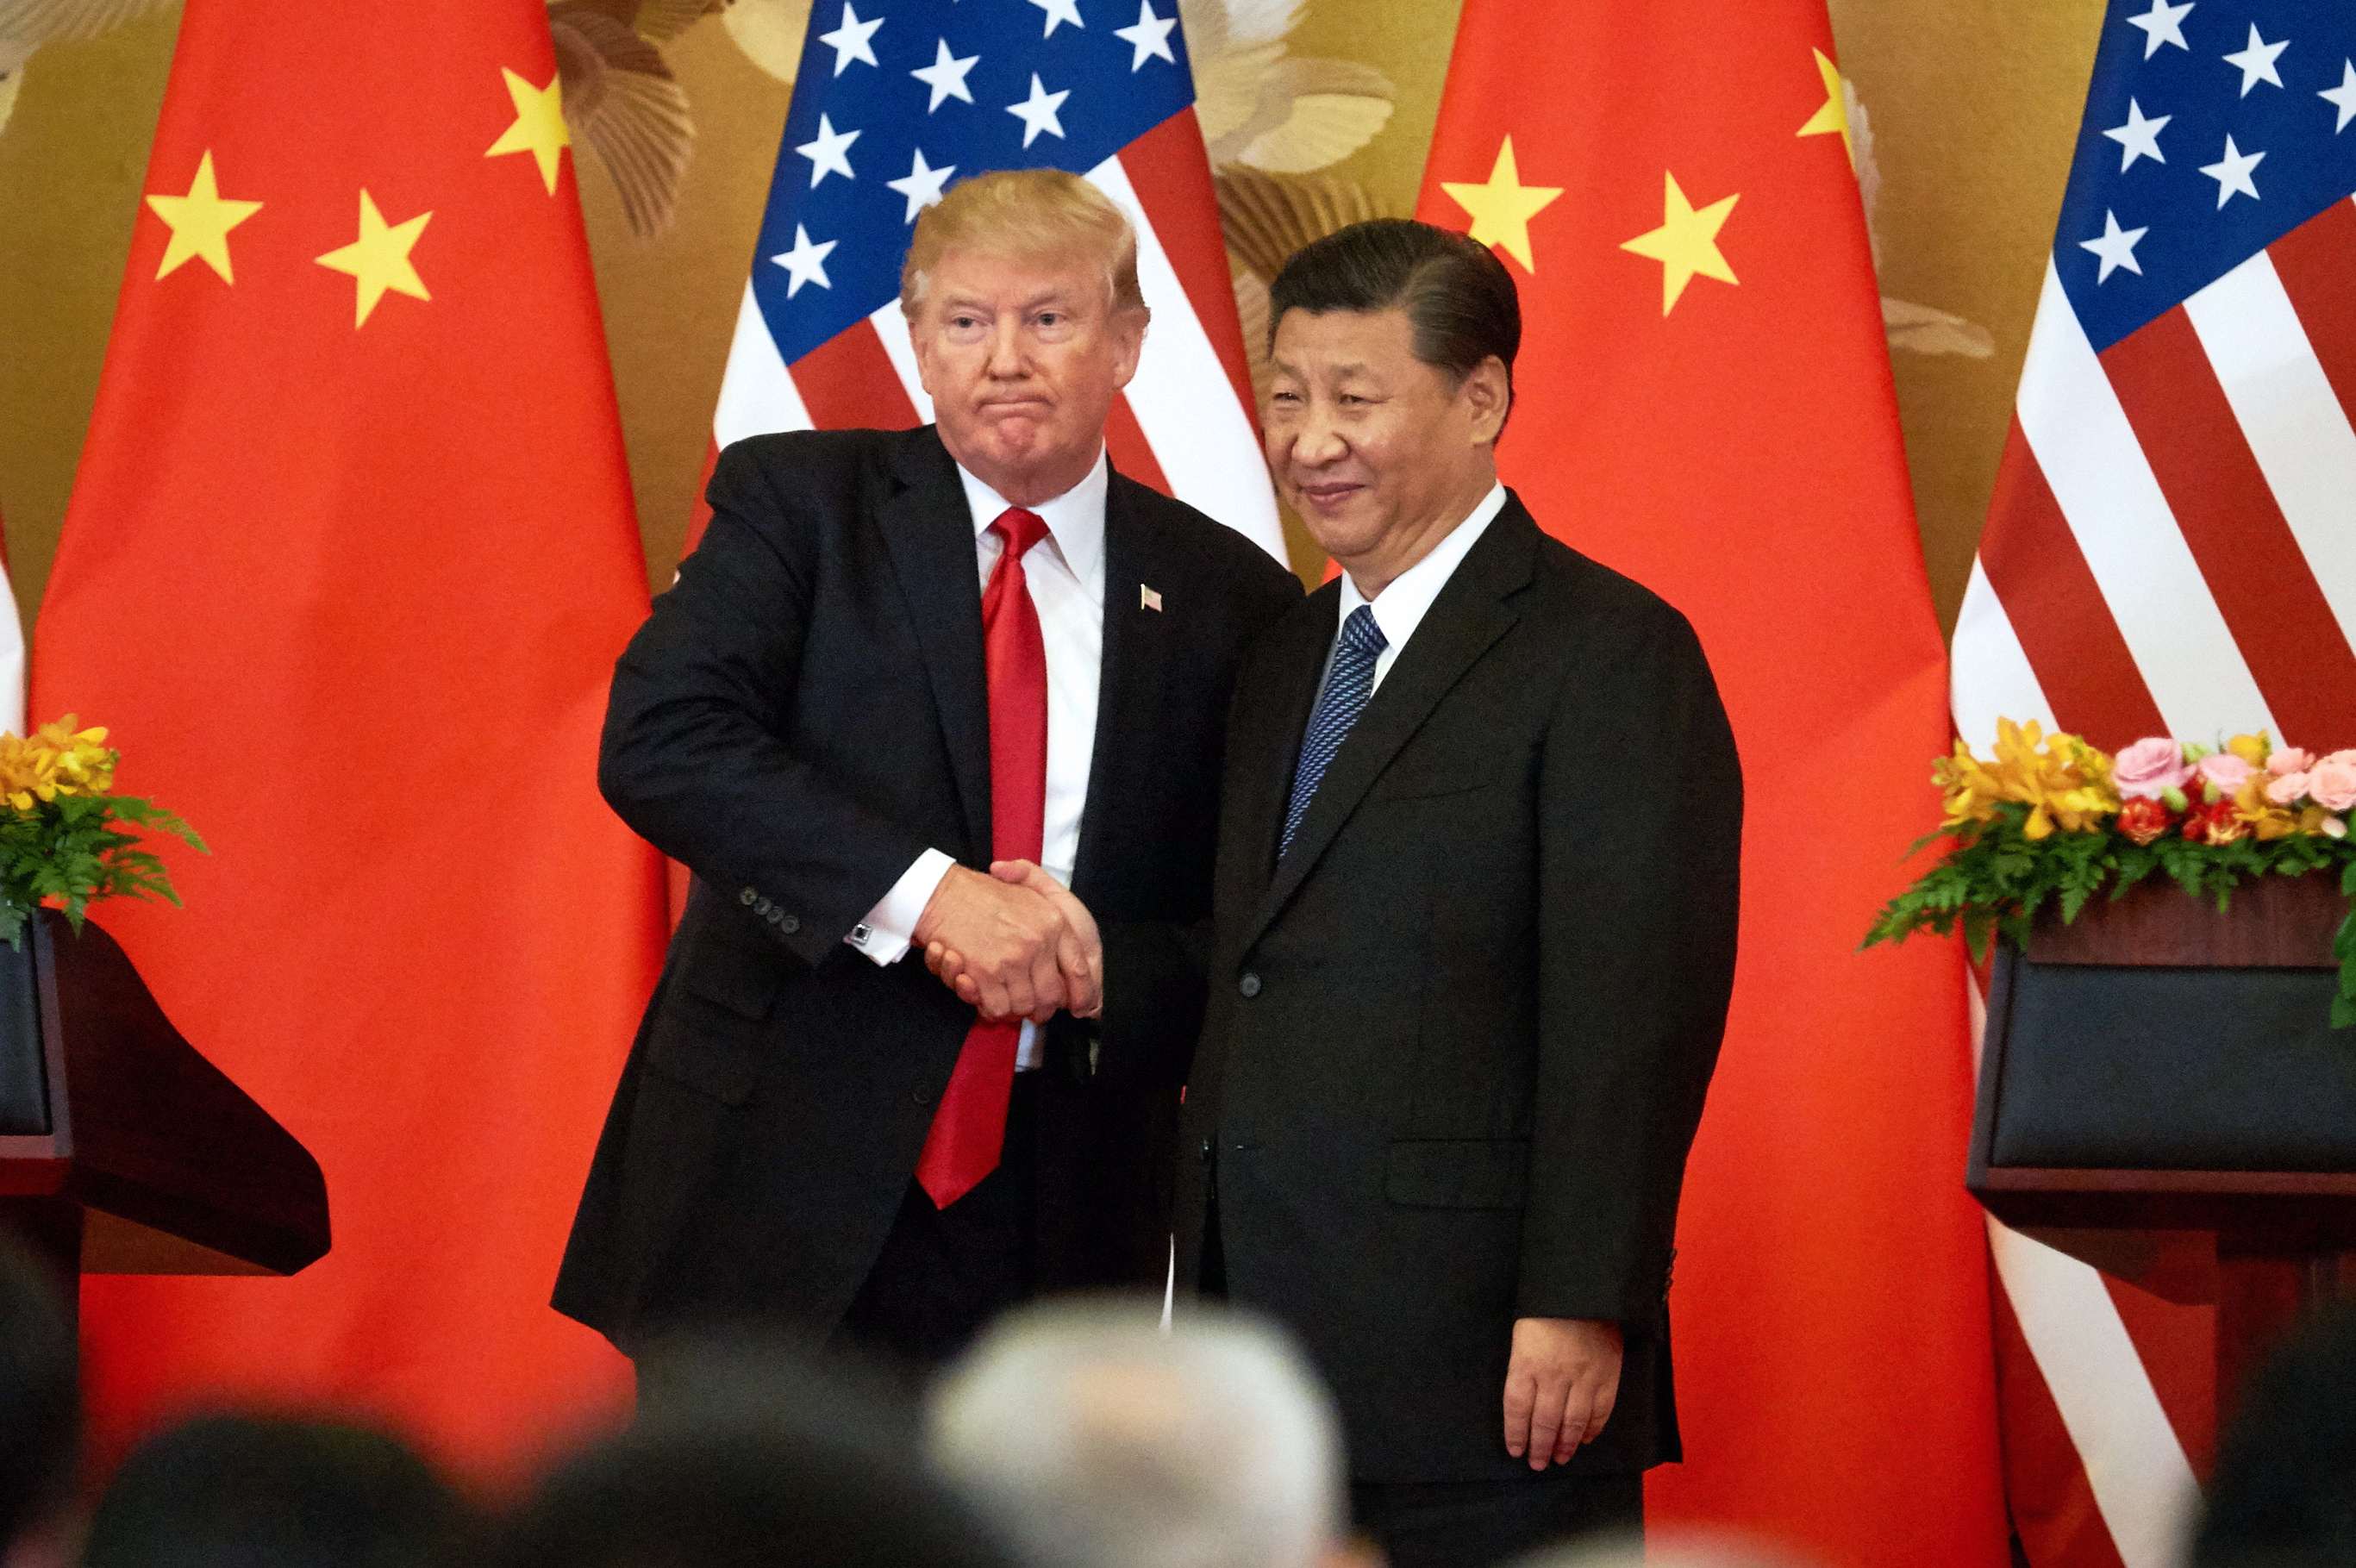 US President Donald Trump (L) and China's President Xi Jinping shake hands at a press conference following their meeting at the Great Hall of the People in Beijing.